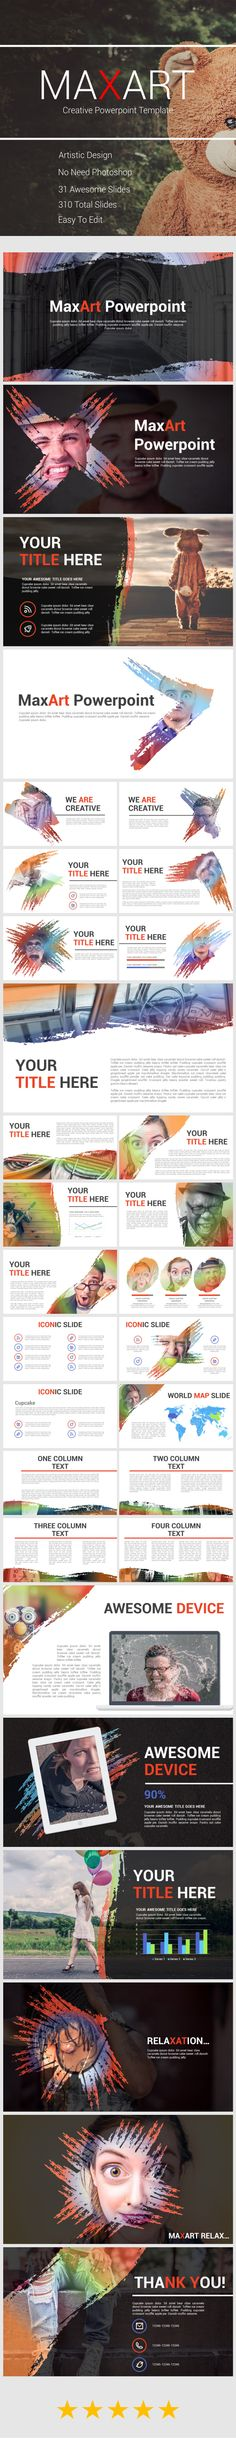 MaxArt - Creative Powerpoint Template. Download here: http://graphicriver.net/item/maxart-creative-powerpoint-template/16187066?ref=ksioks